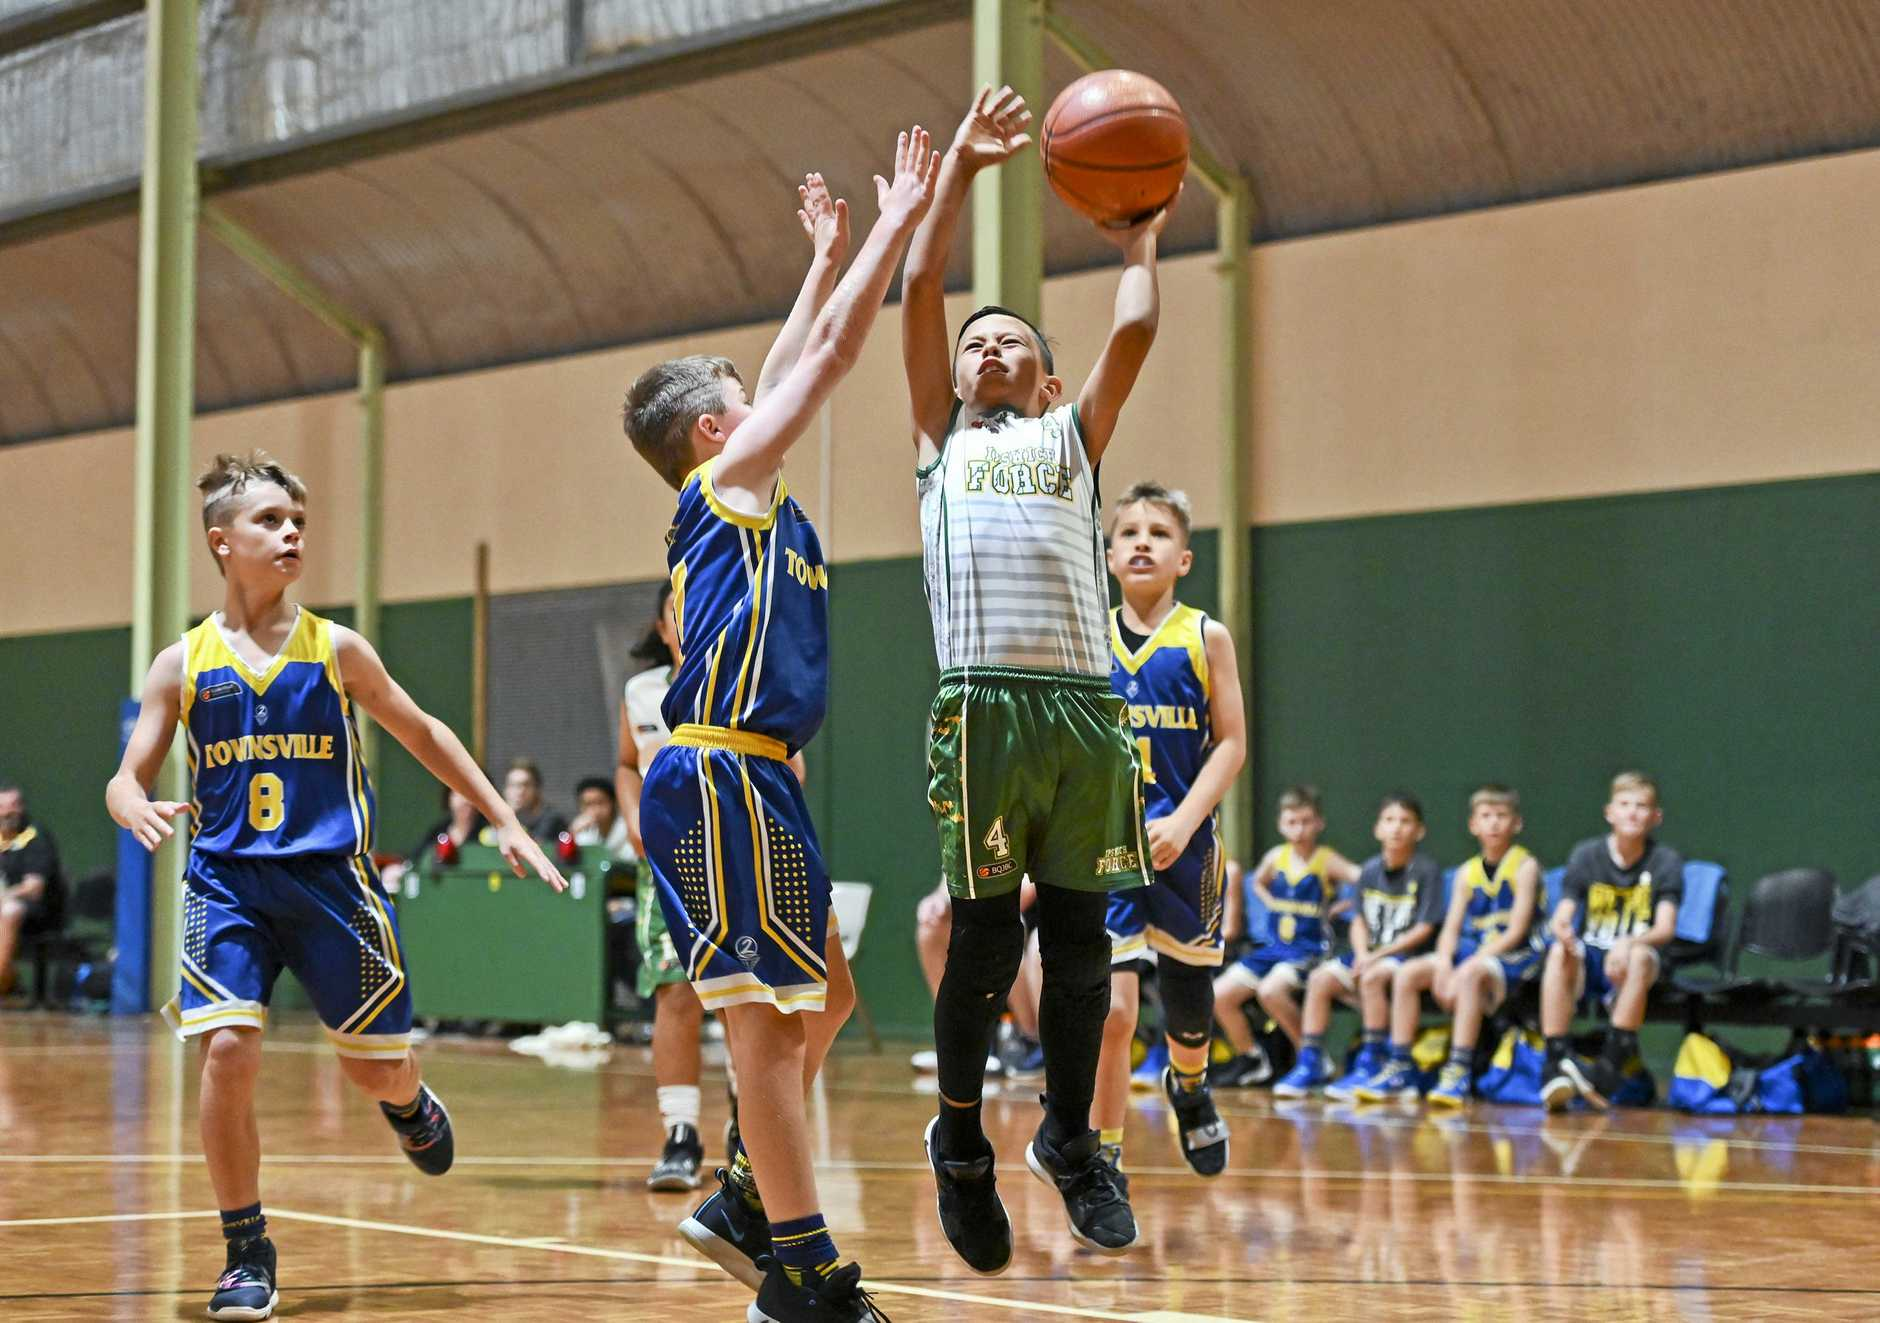 Ipswich under-12 basketballer Kobi Patrick flies high for his team on their way to gold medal glory at the state titles.